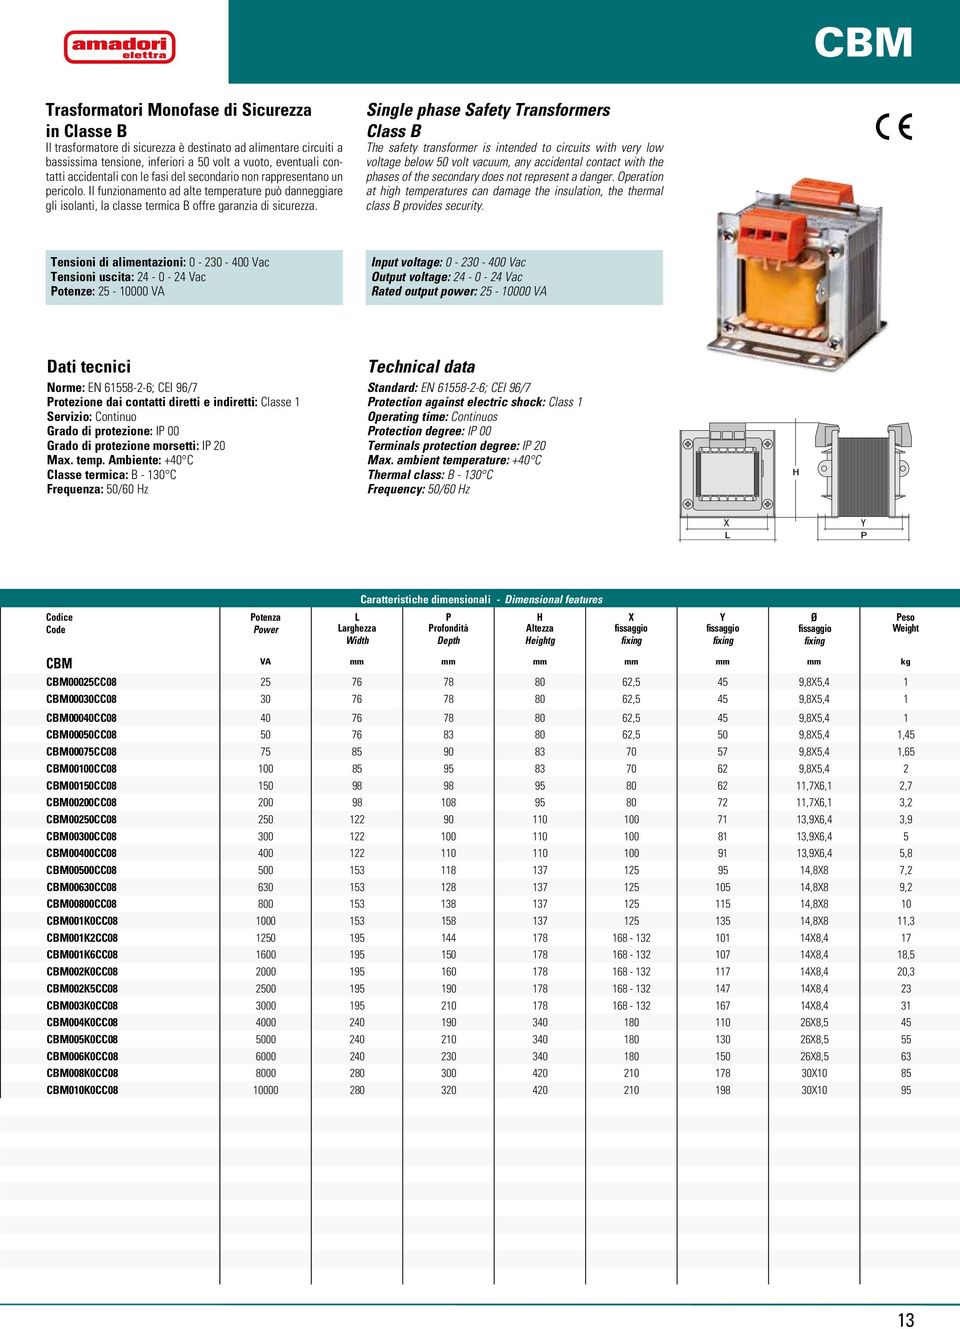 Single phase Safety Transformers Class B The safety transformer is intended to circuits with very low voltage below 50 volt vacuum, any accidental contact with the phases of the secondary does not